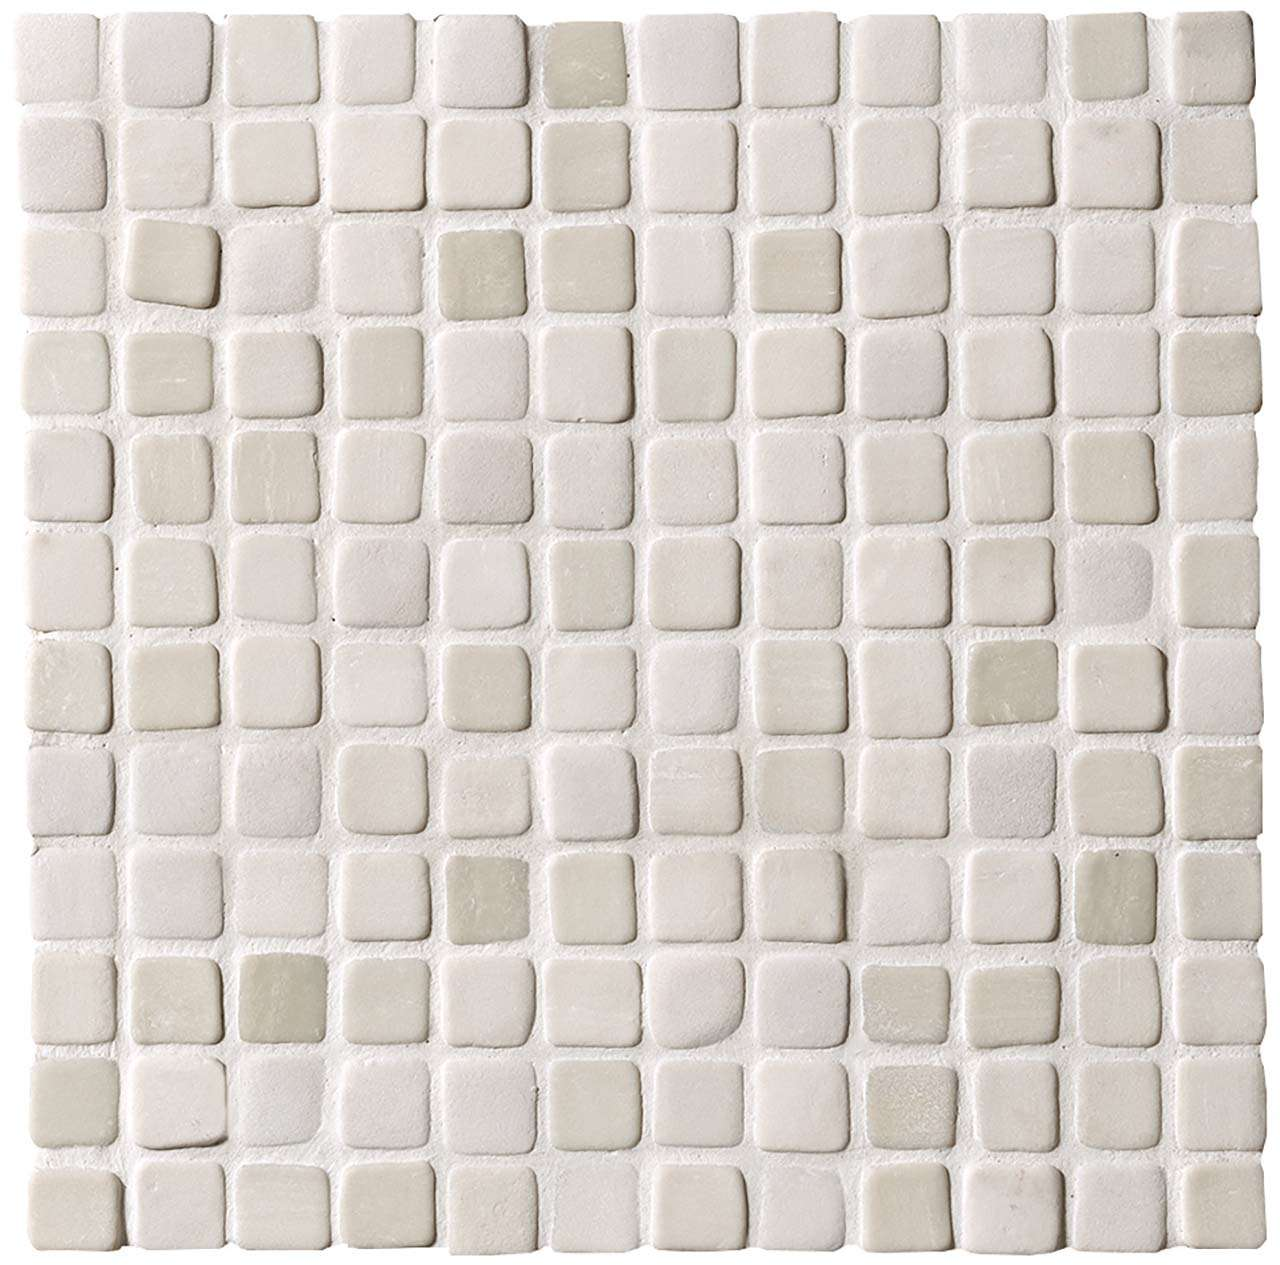 Fap Nord Artic Solid Color Mosaico Matt 30x30